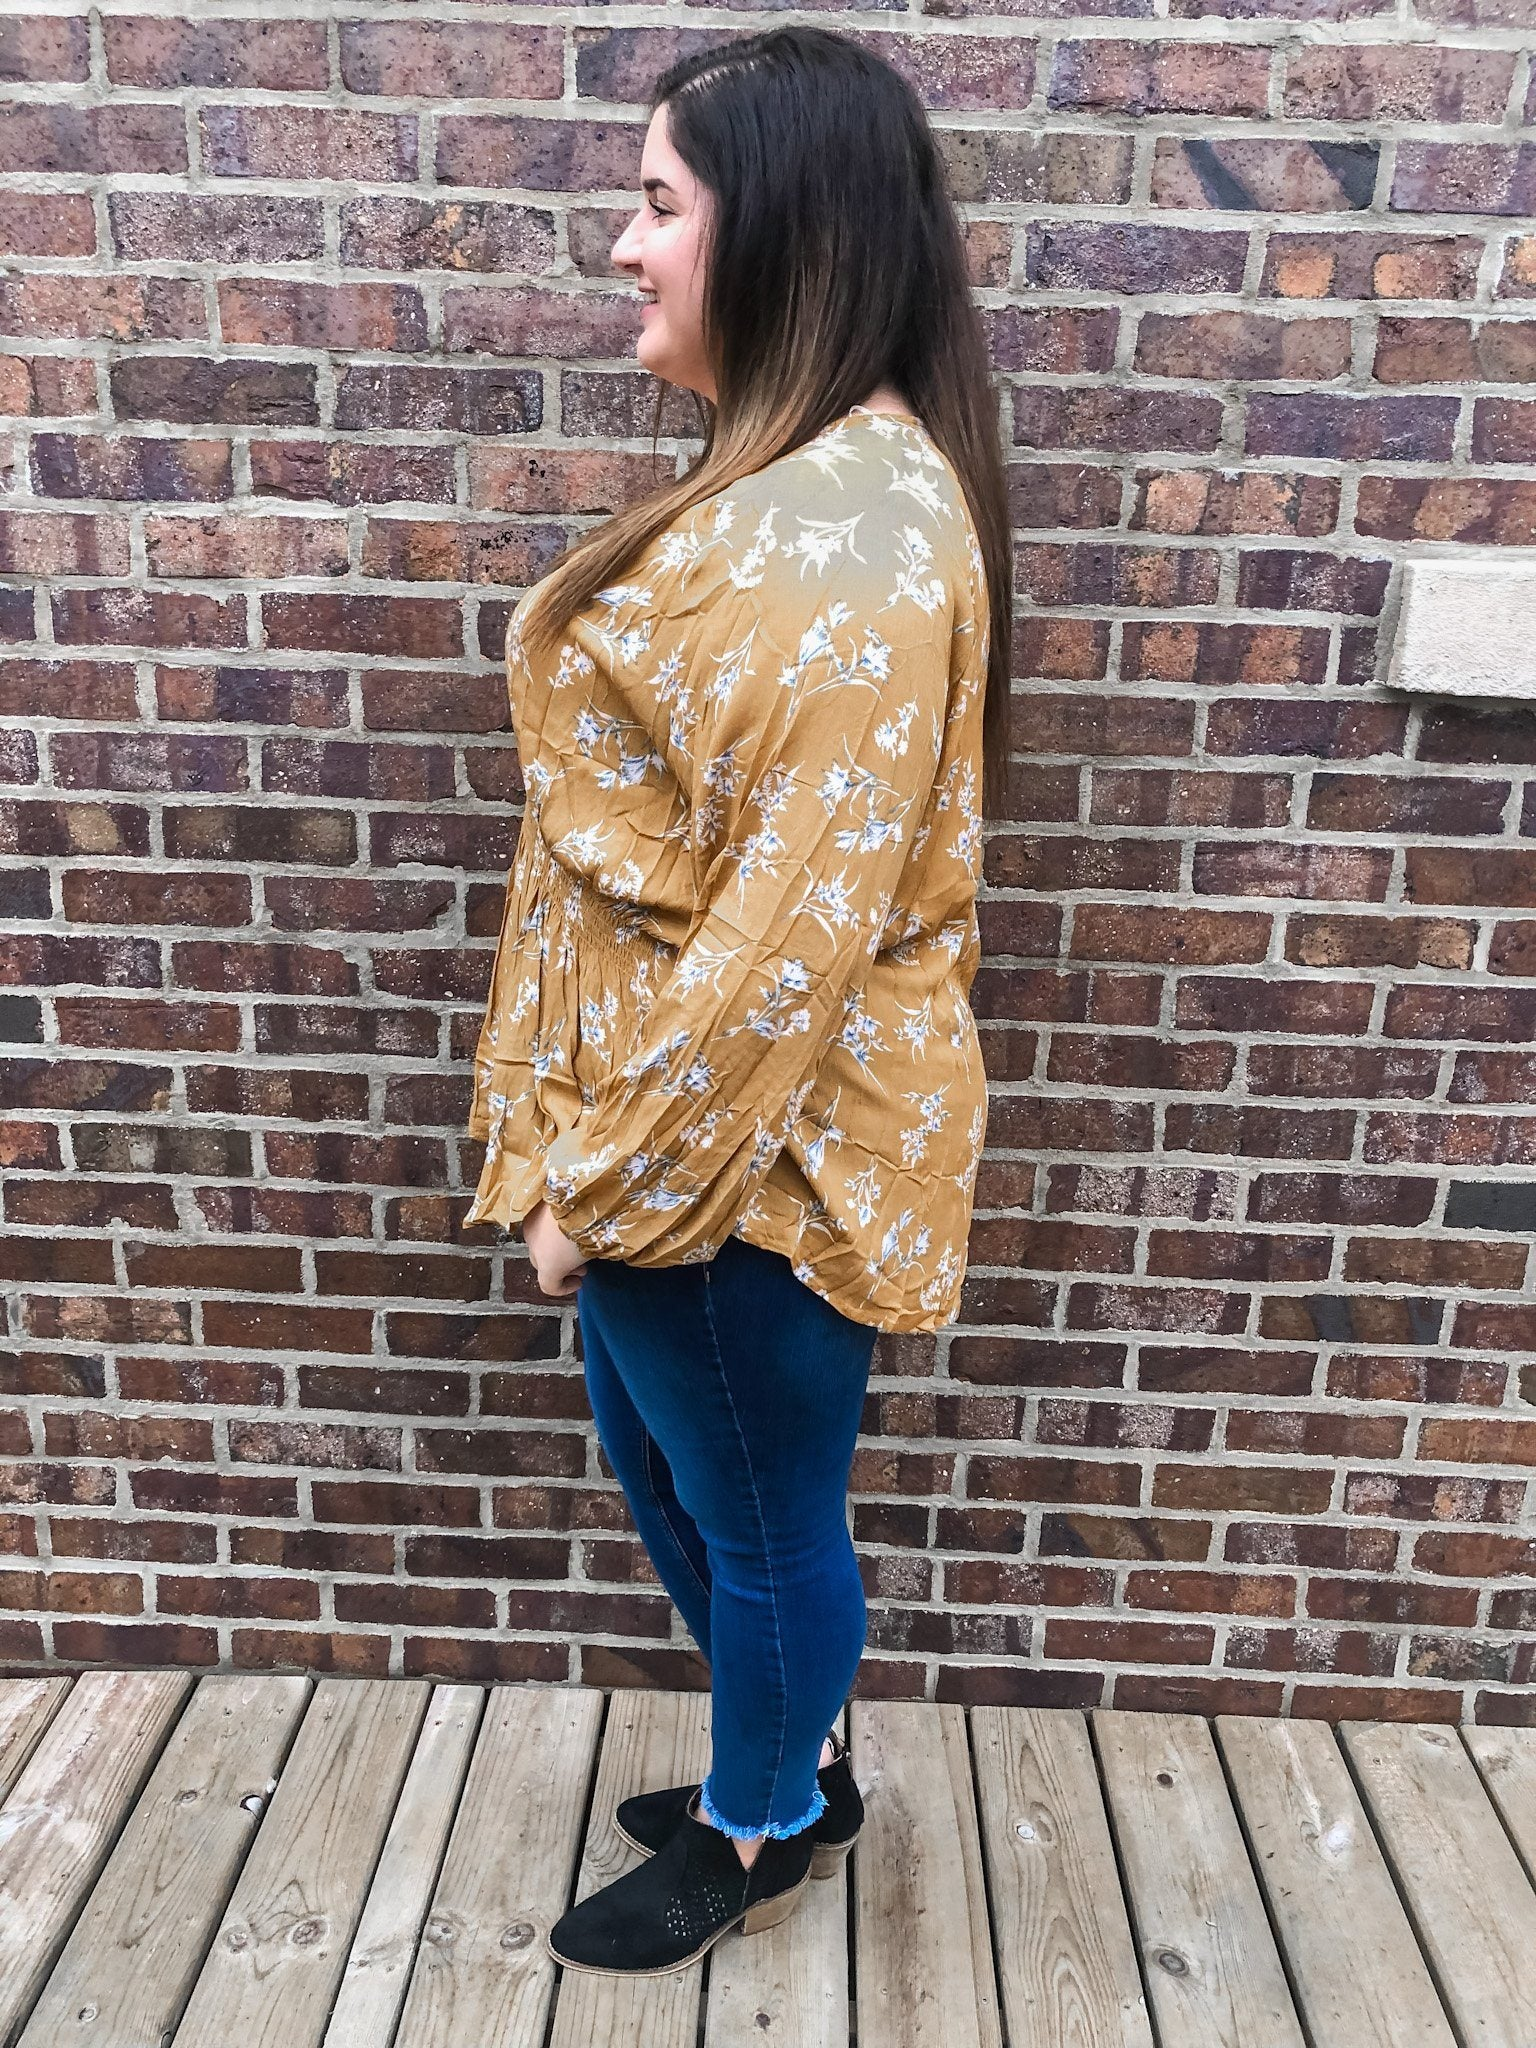 The Savannah Mustard Floral Top in Plus Long sleeve Gigio